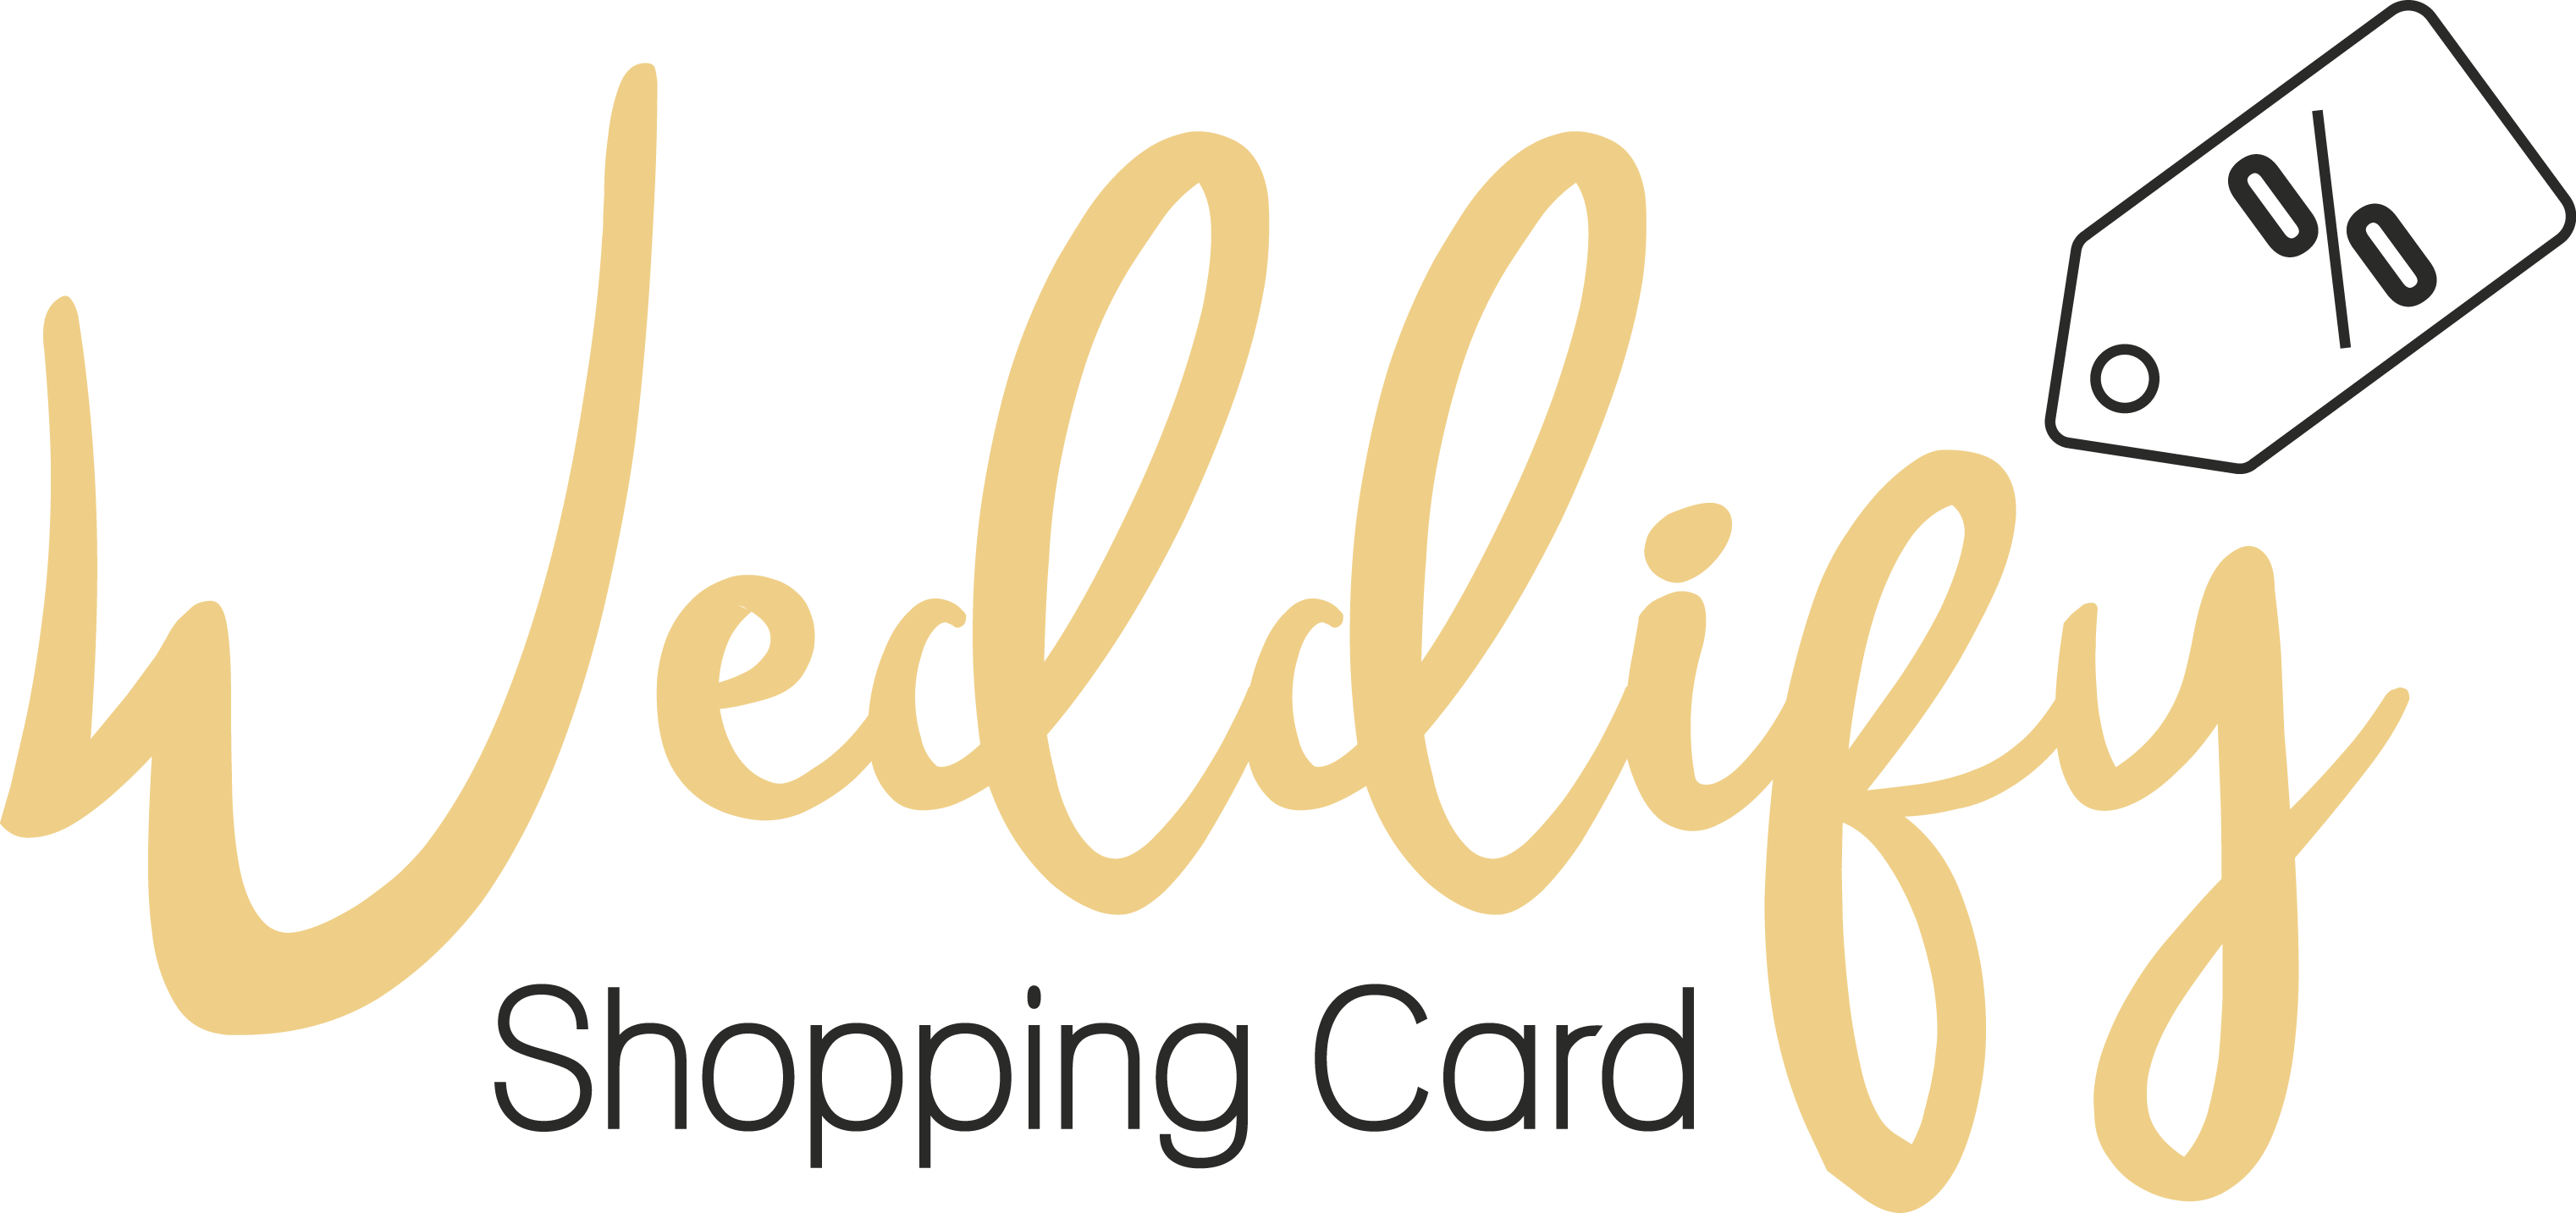 Weddify Logo Shopping Card gold